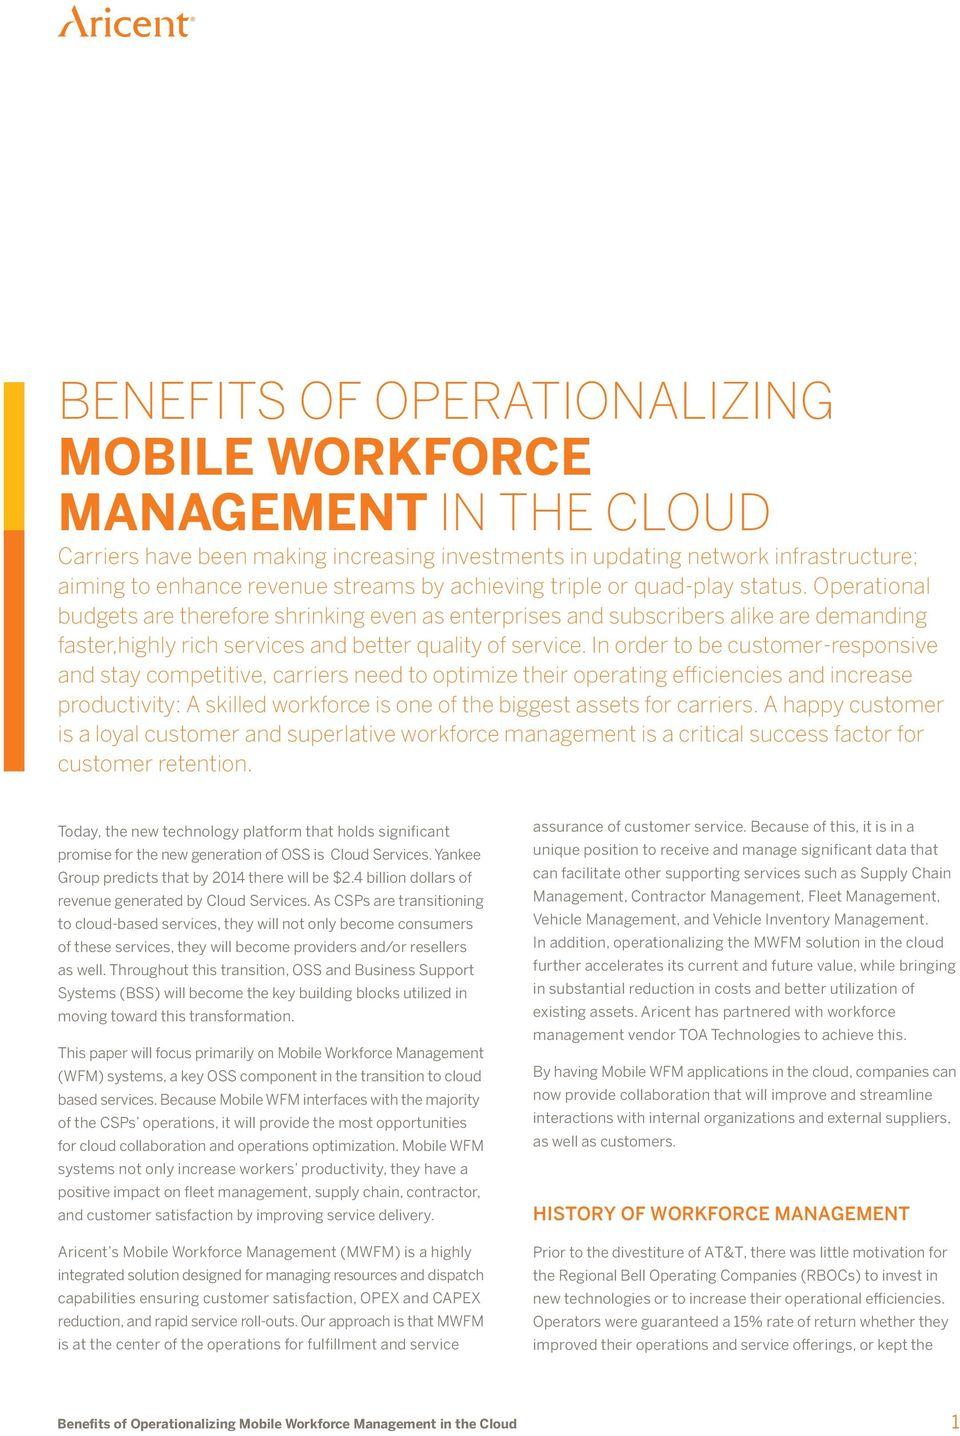 In order to be customer-responsive and stay competitive, carriers need to optimize their operating efficiencies and increase productivity: A skilled workforce is one of the biggest assets for